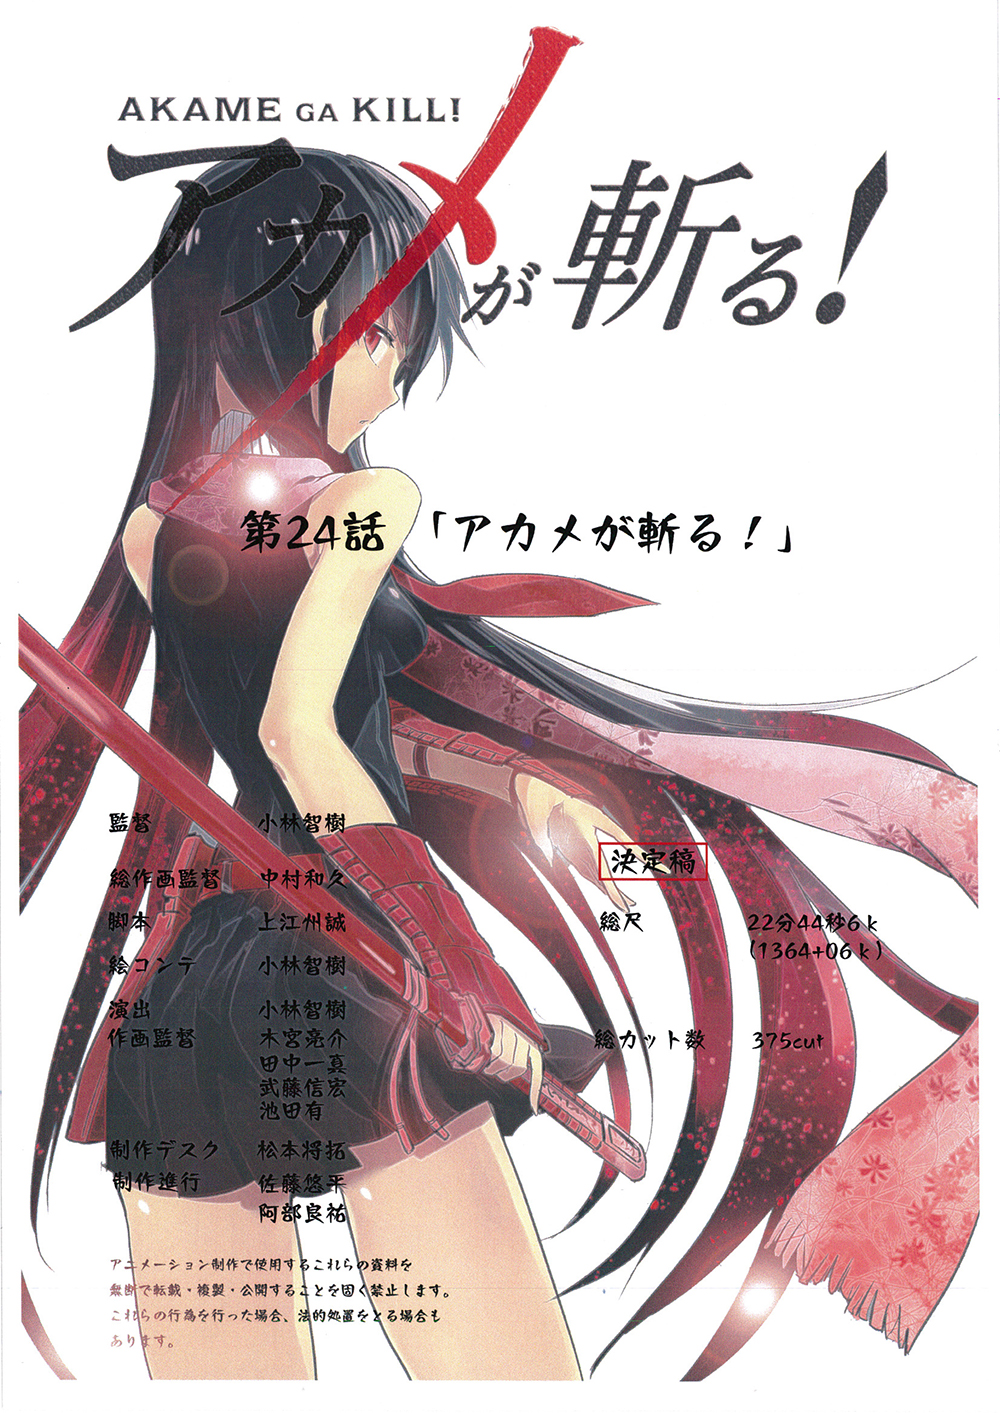 Akame ga Kill_Haruhichan.com Episode 24 Storyboard Leak 001